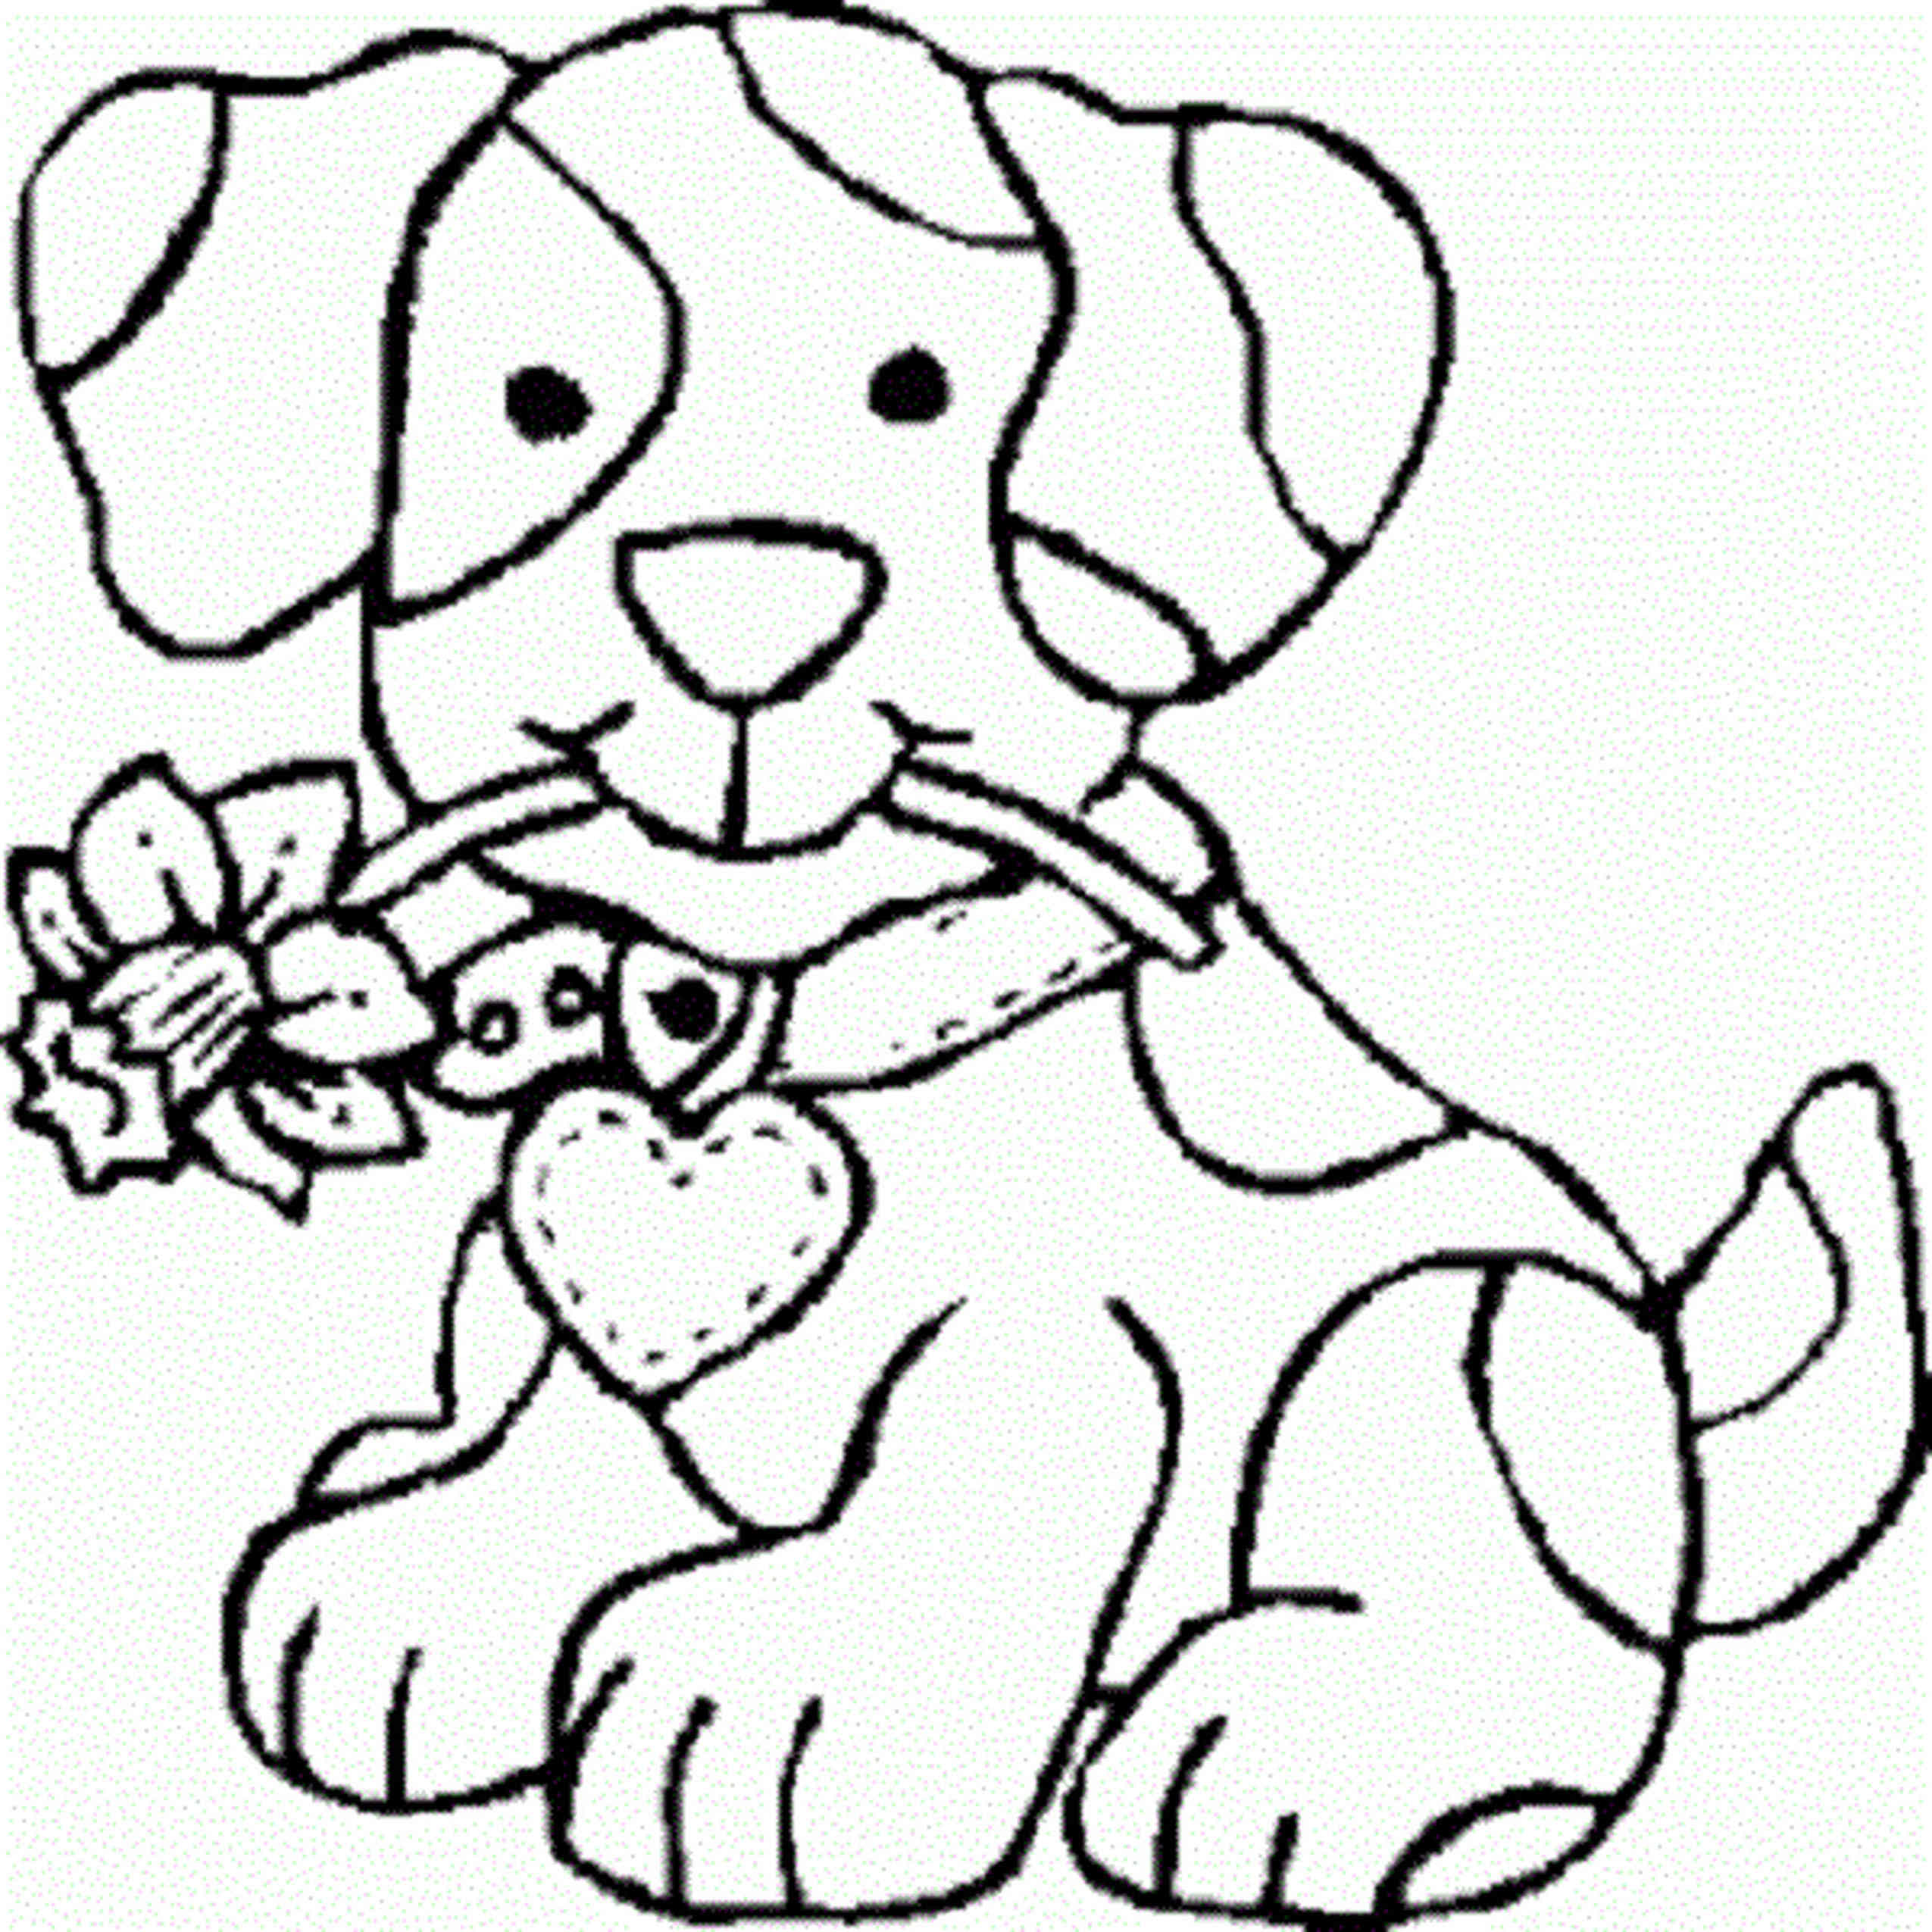 Coloring Pages: Kitten And Bird Free Kids Coloring Pages For Girls ...